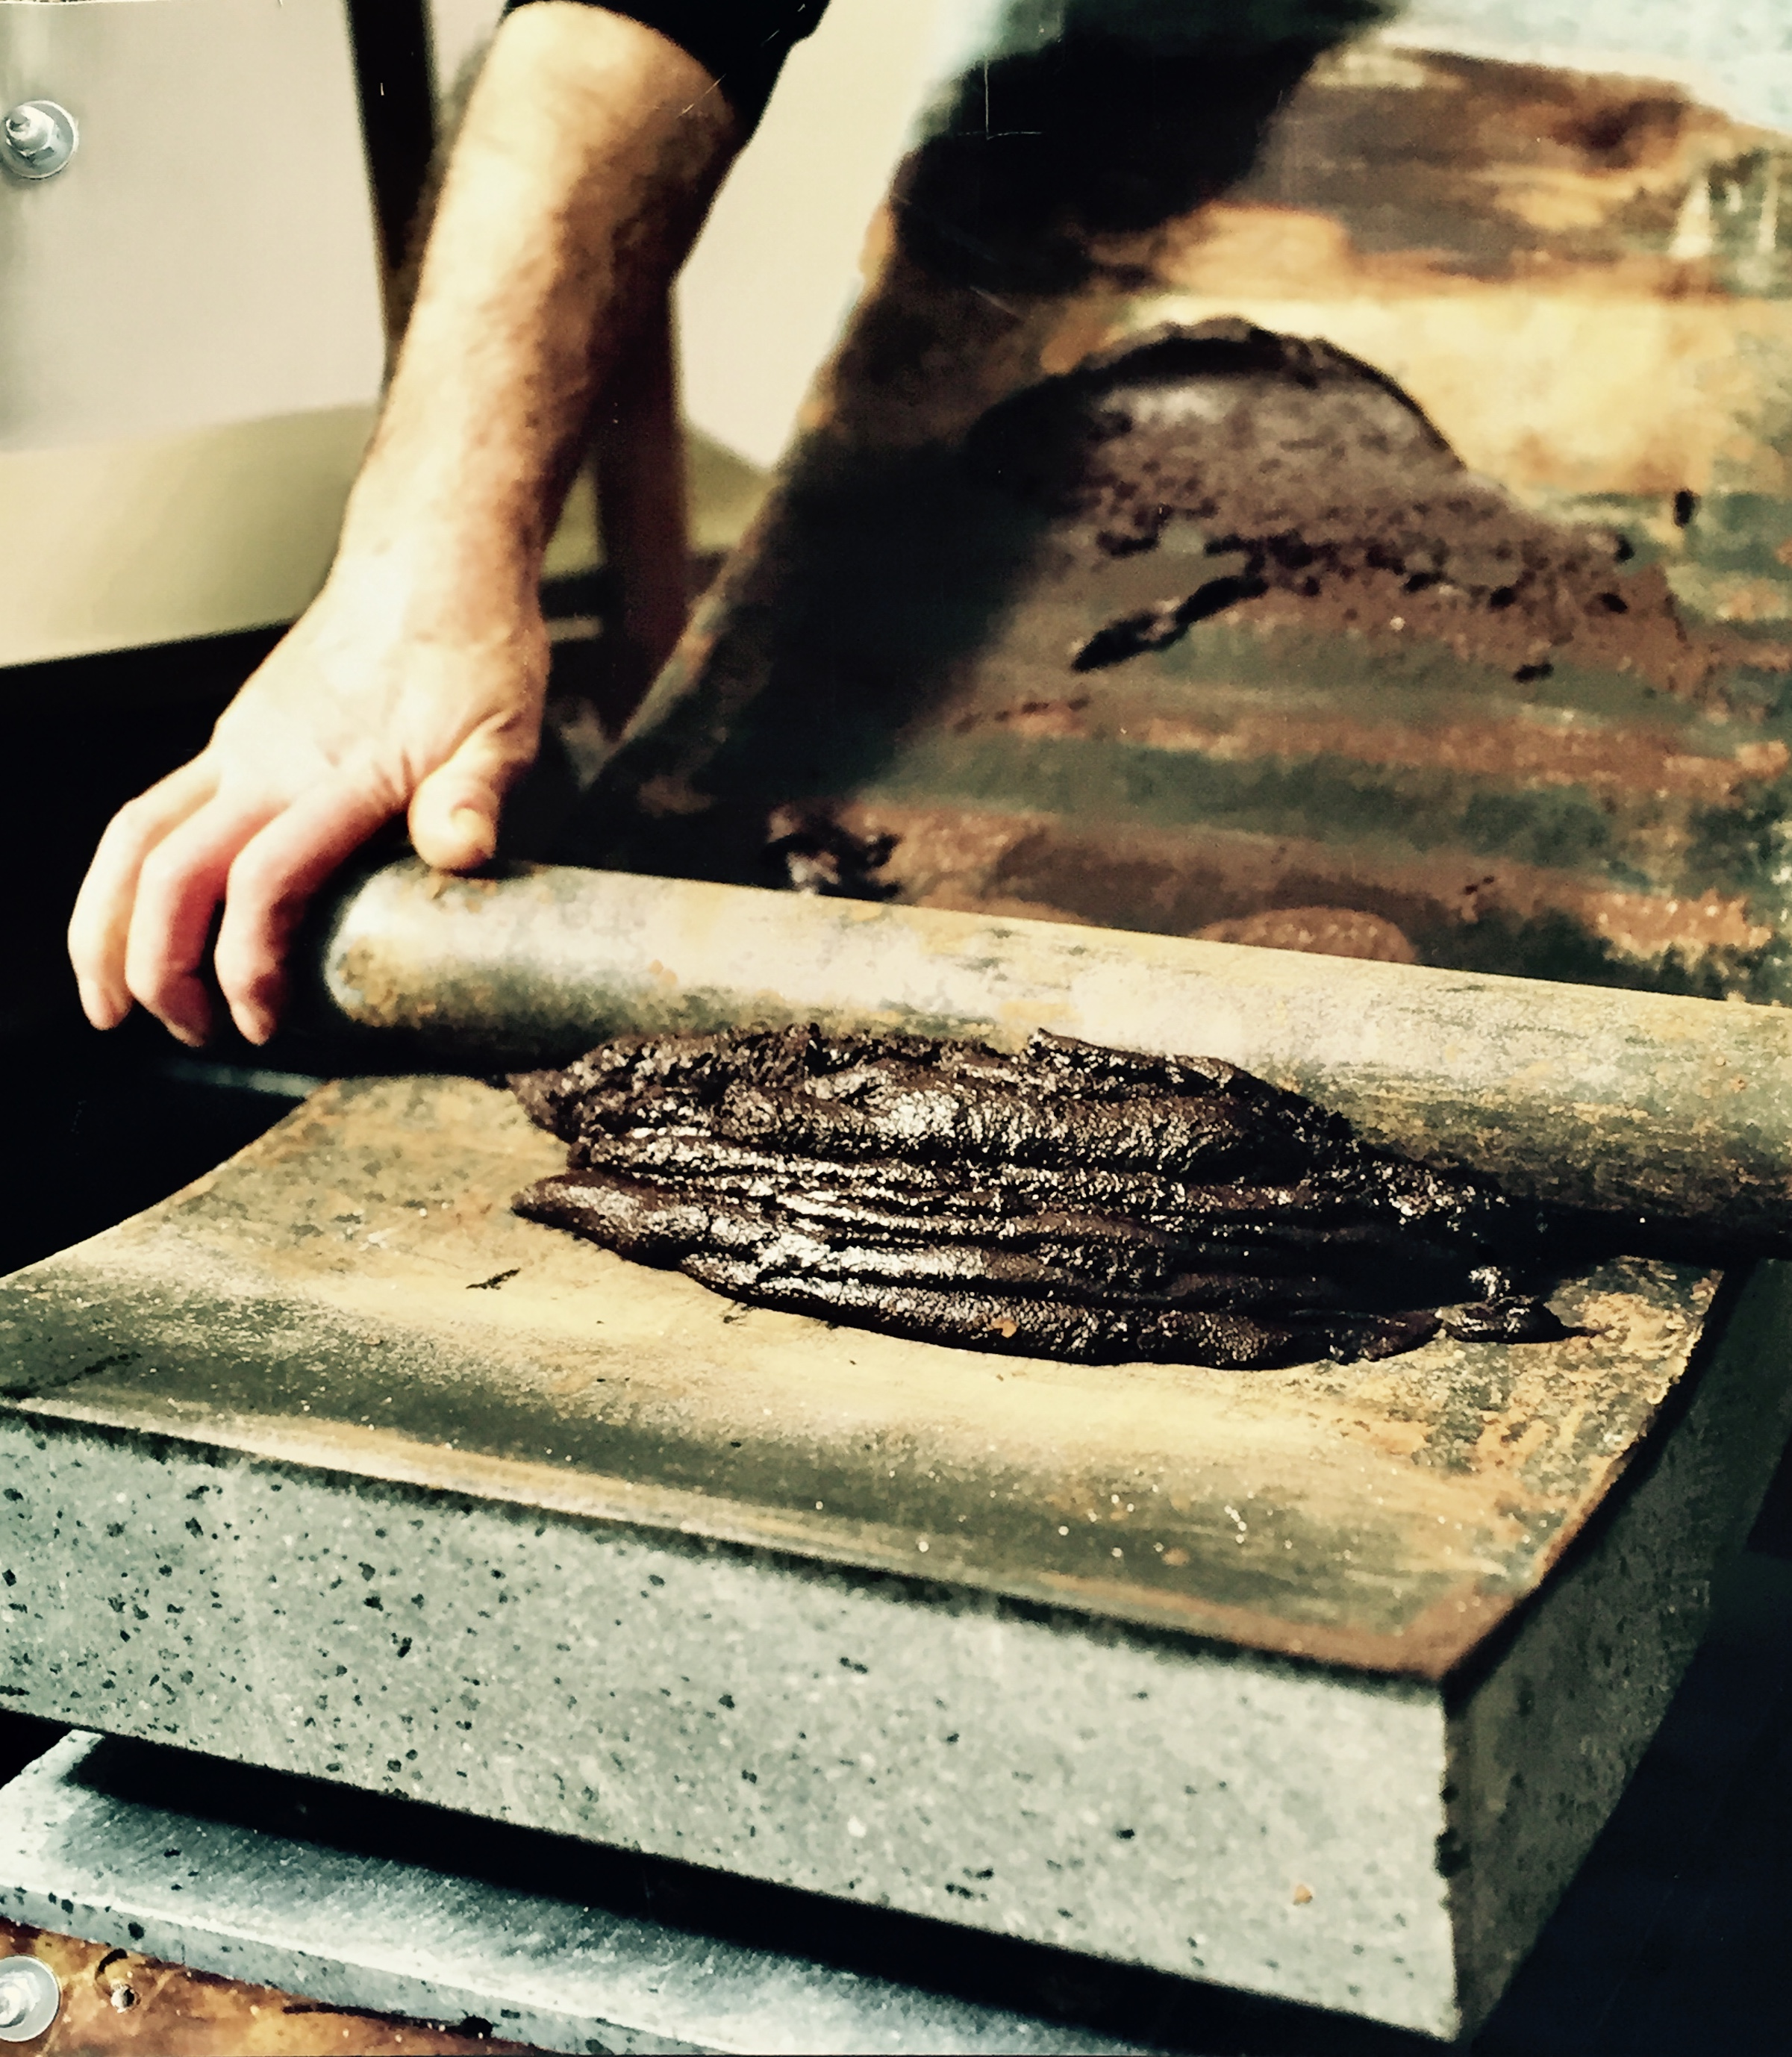 Matete used to hand grind cocoa beans for making chocolate